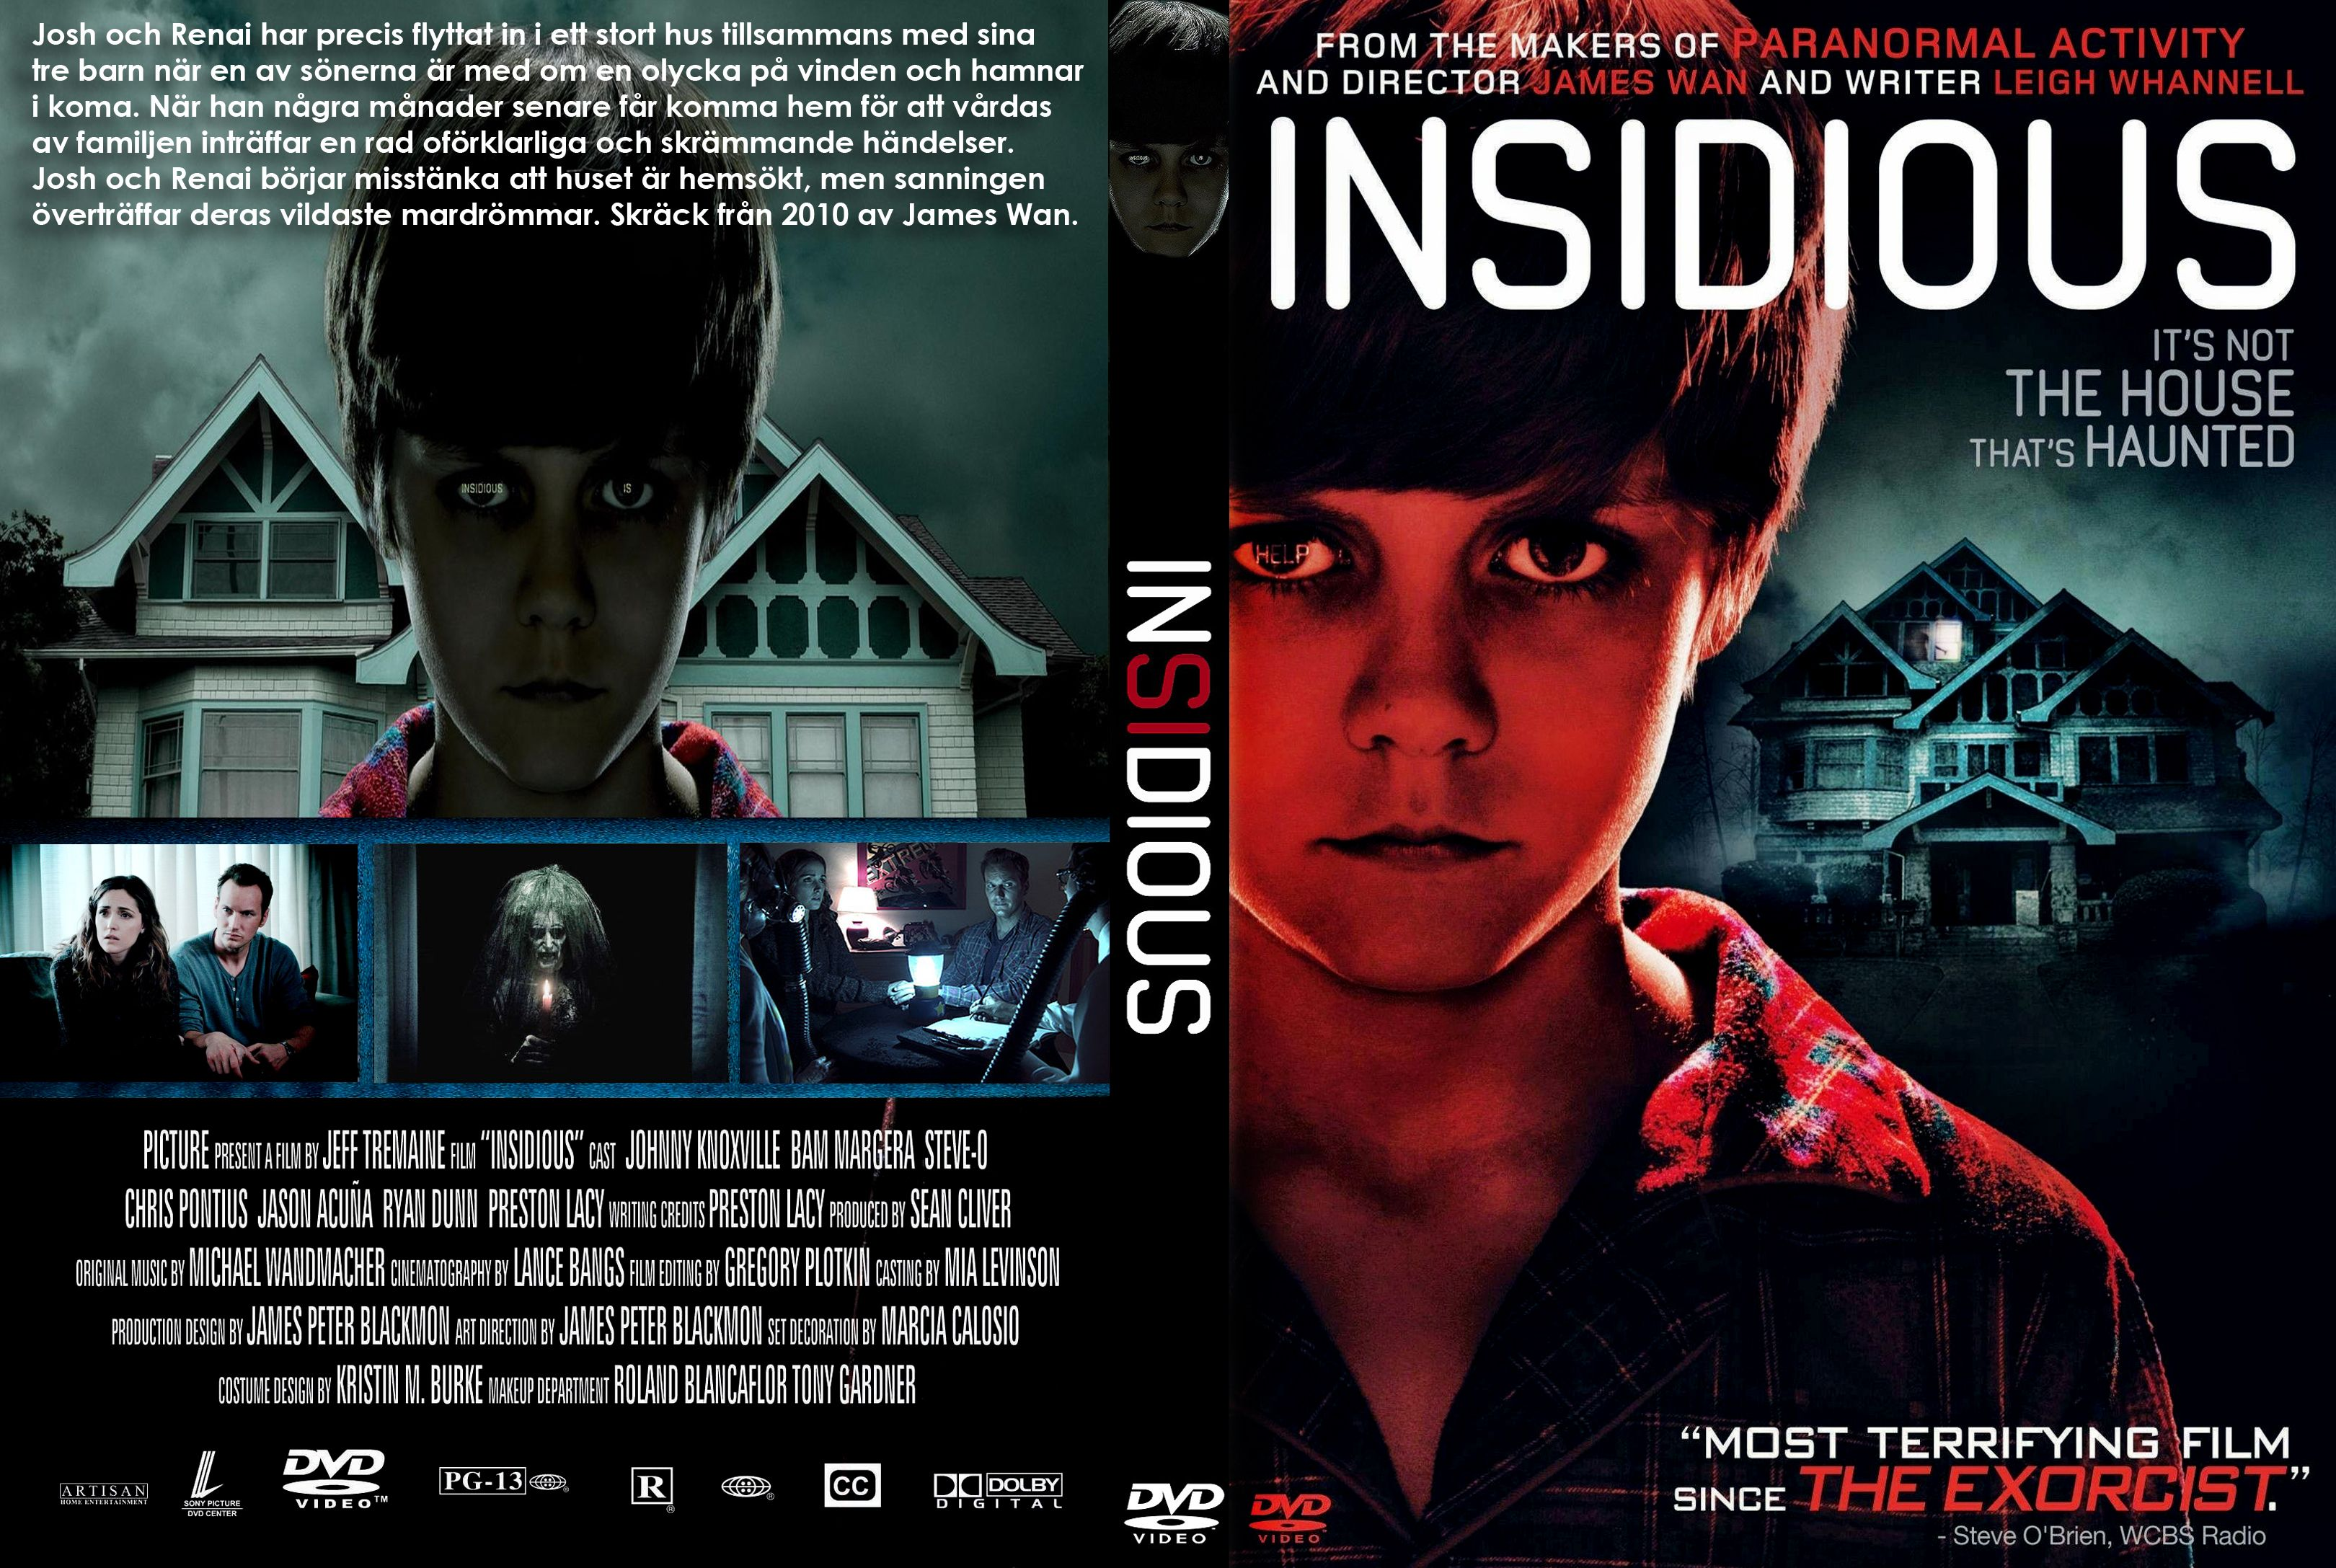 movie front covers covers box sk insidious high quality dvd